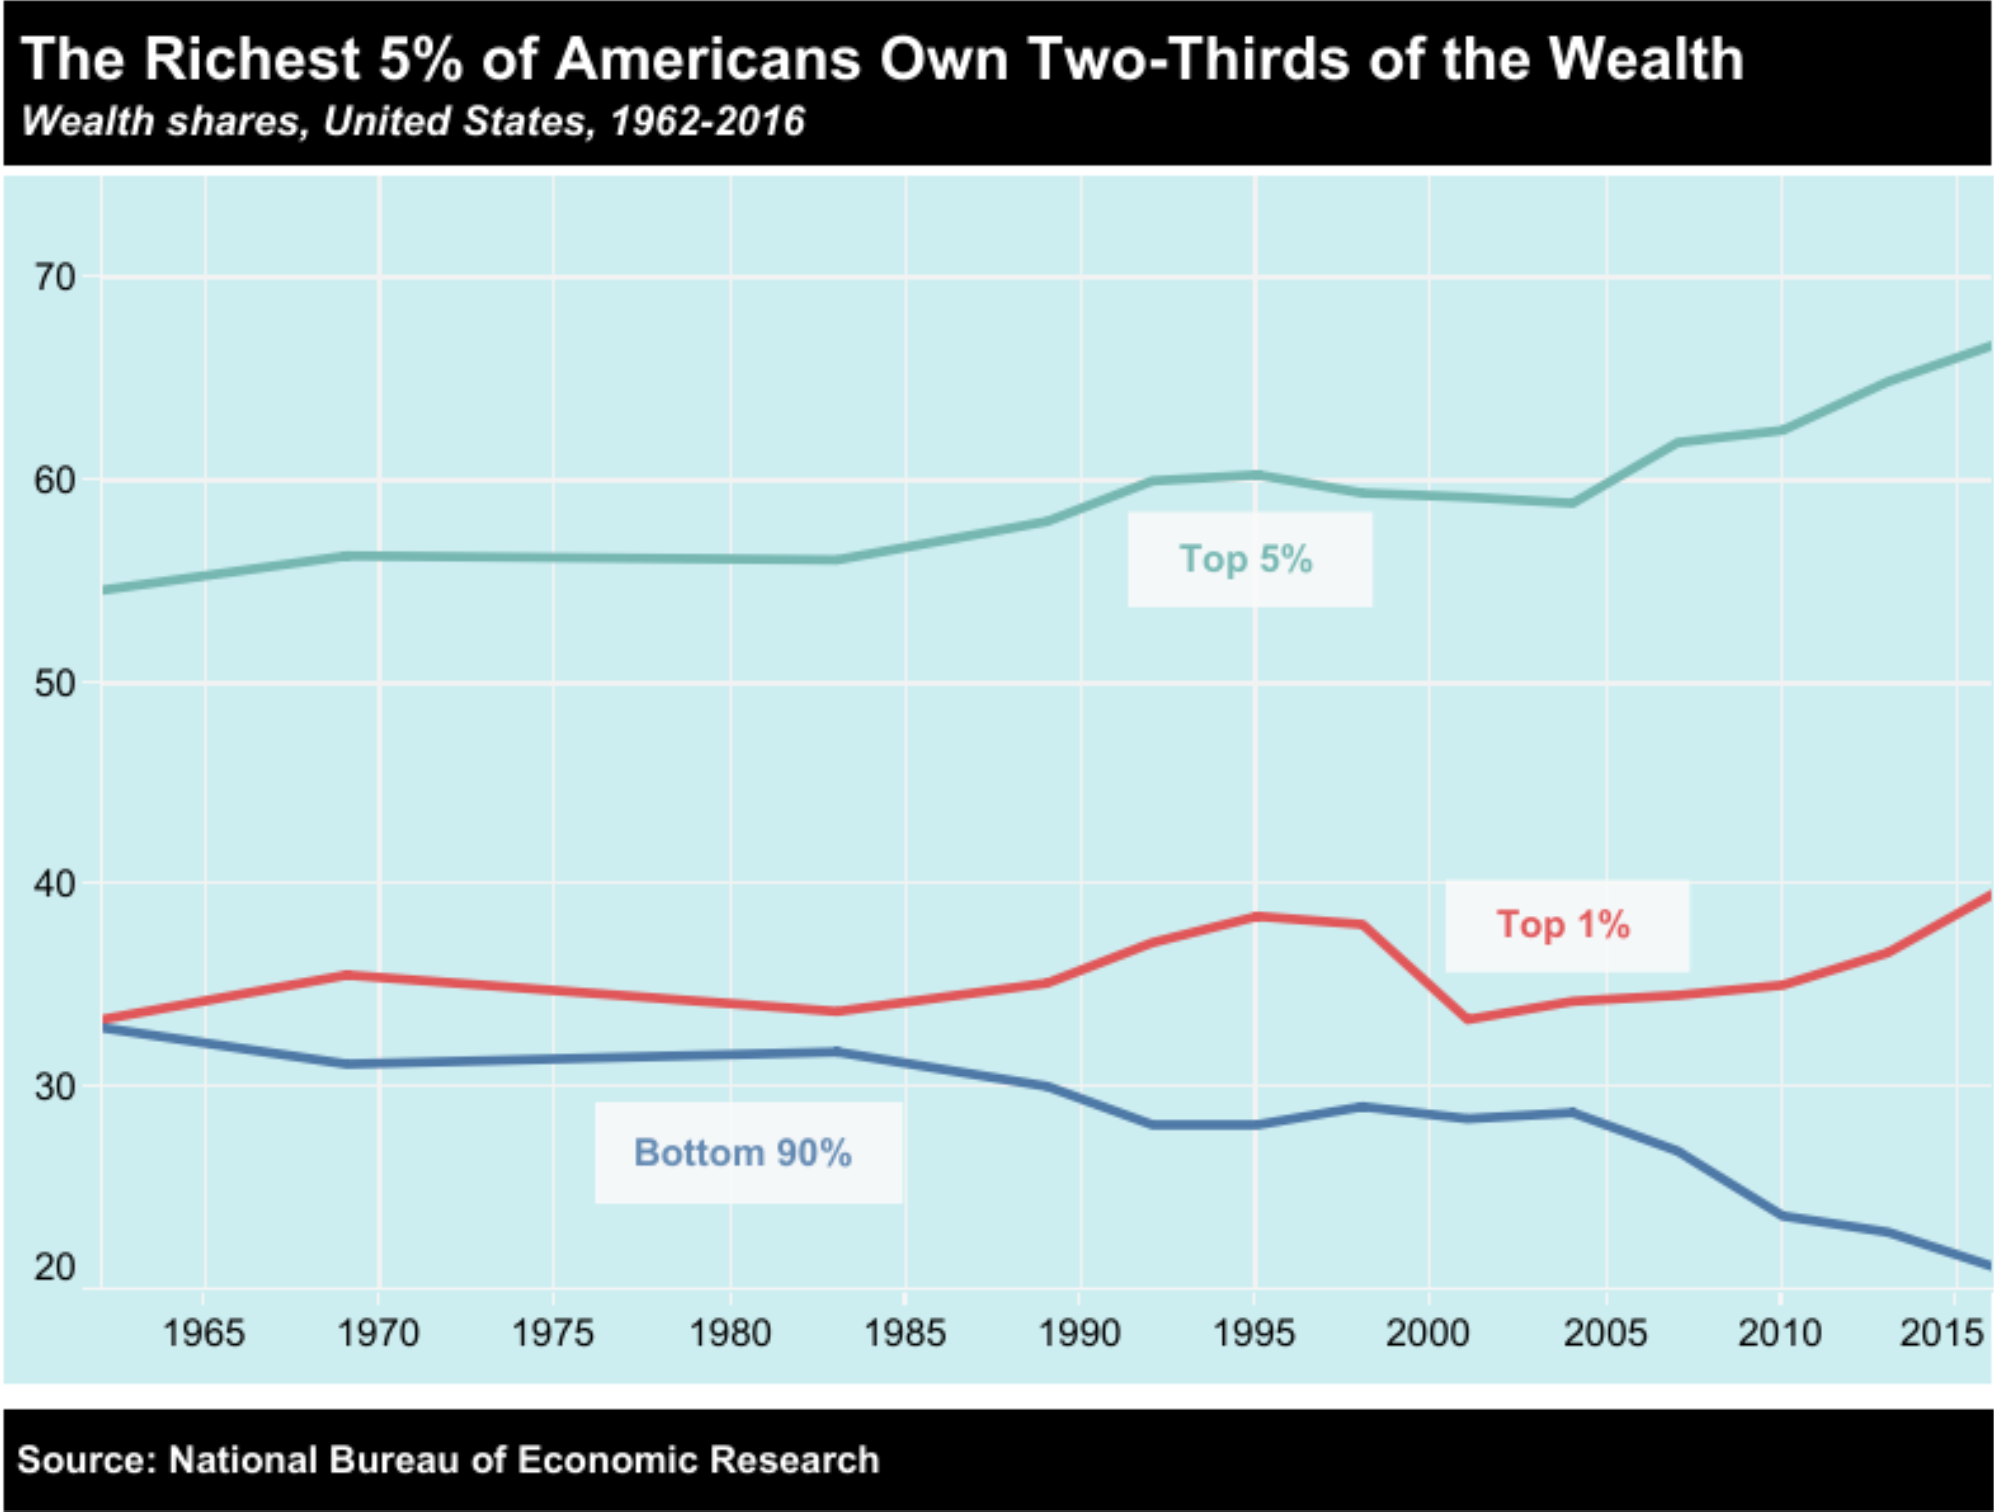 The top 5% of Americans own Two-Thirds of the Wealth